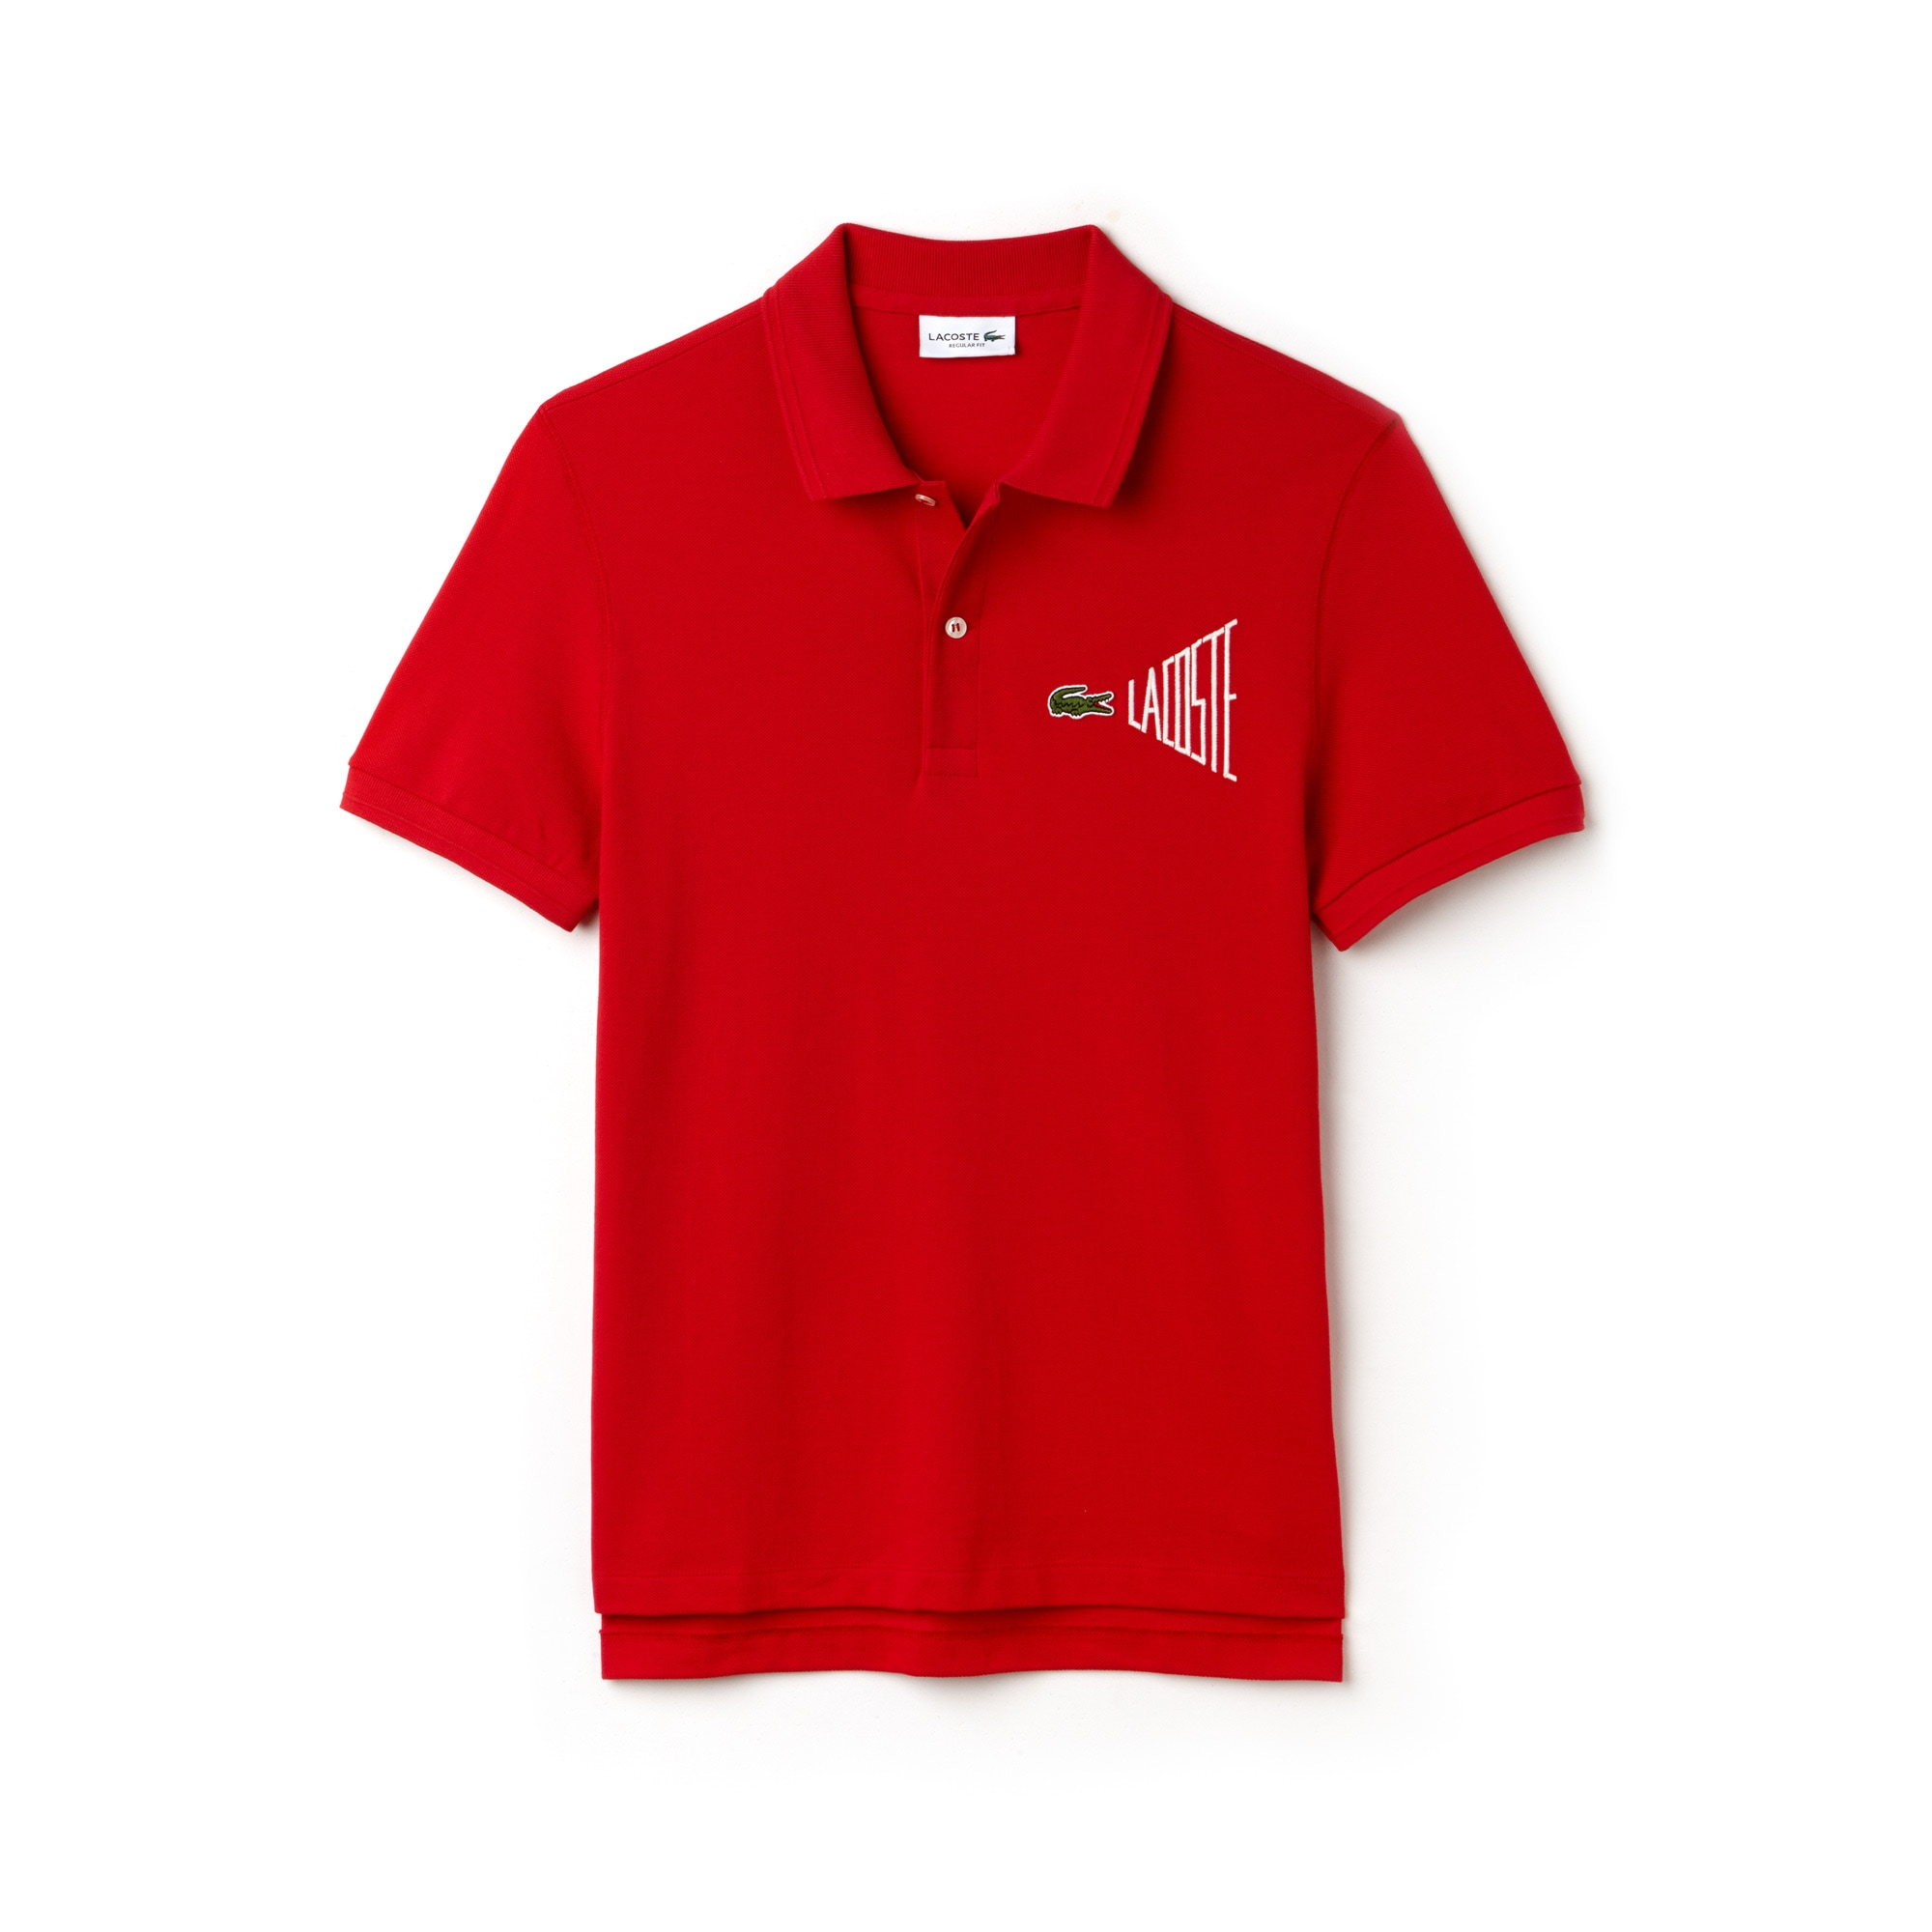 Men's Lacoste Regular Fit Piqué Polo Shirt